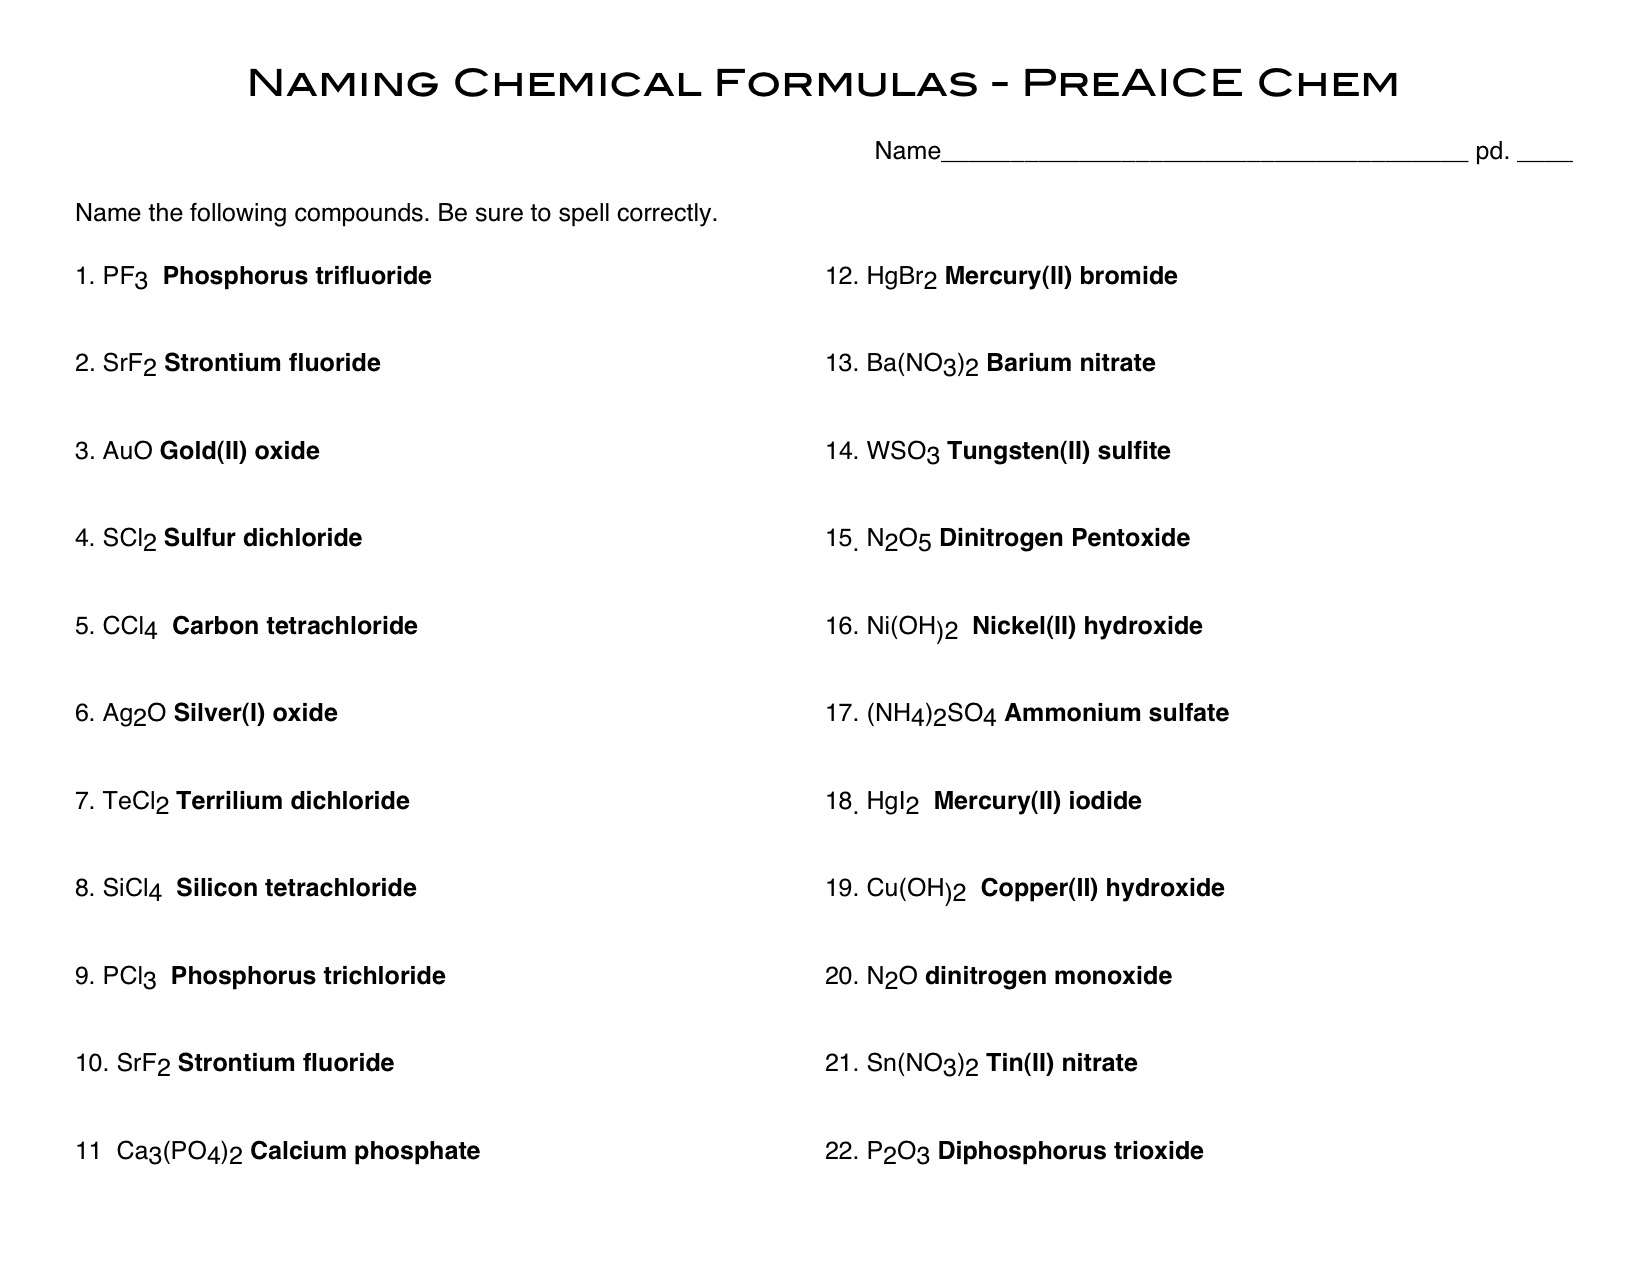 Come Together Chemical Bonding Worksheet Answers – Covalent Bonding Worksheet Answers